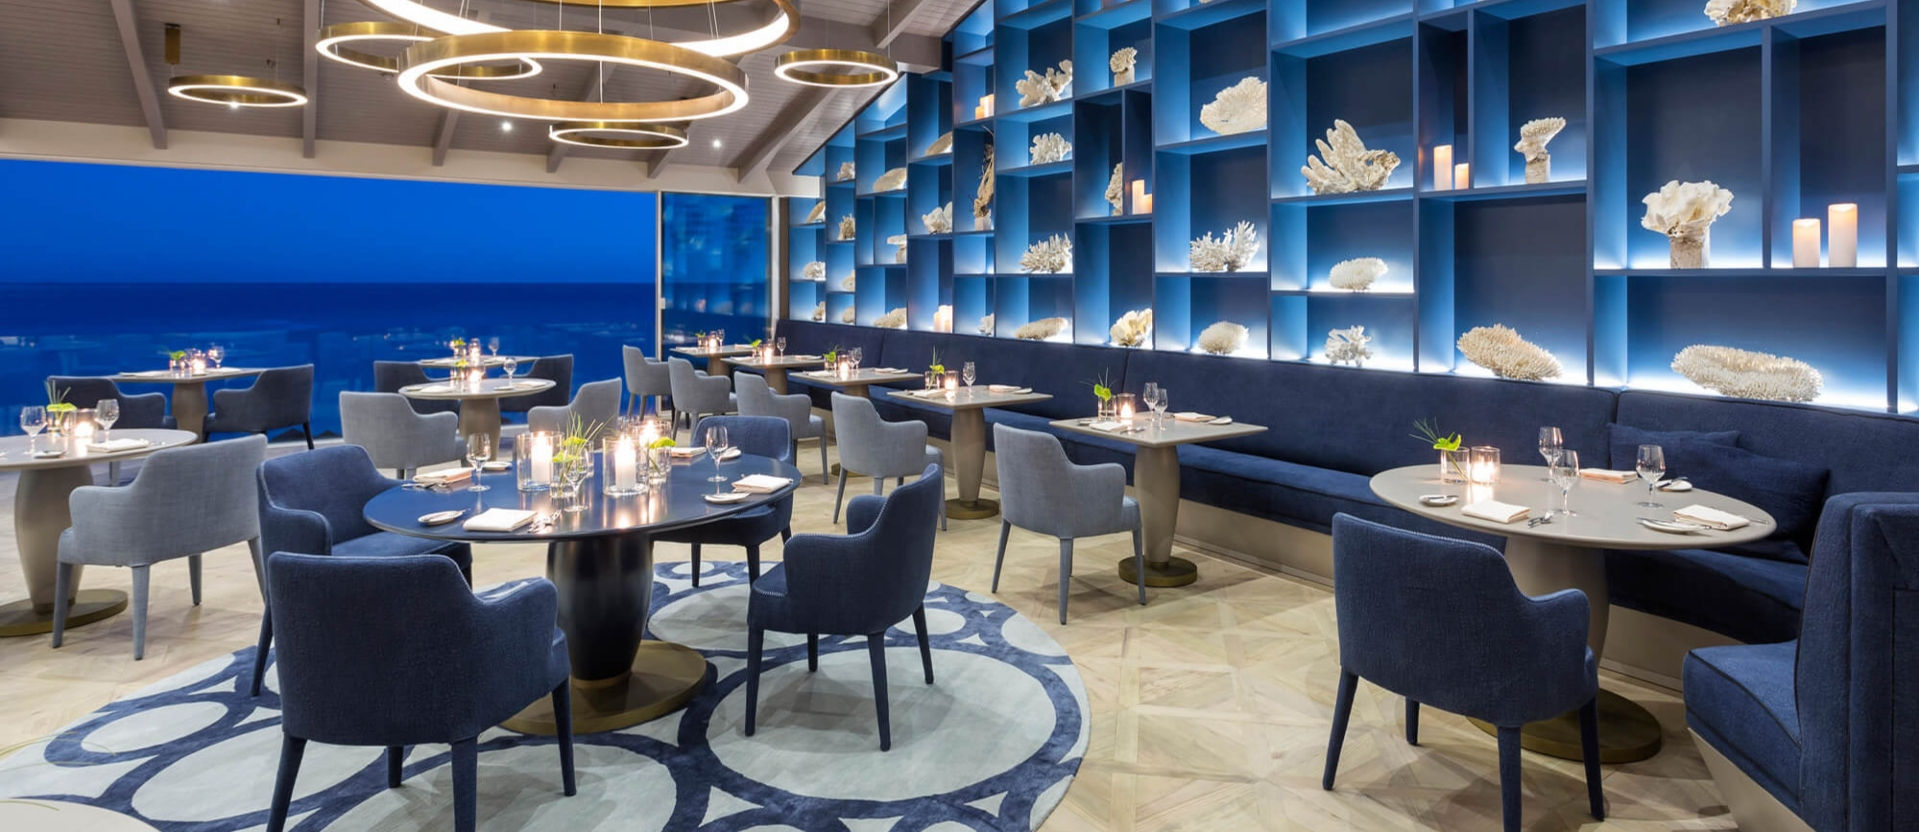 Fine Dining Places: Discover 'Ocean', A Once In A Lifetime Experience In Algarve  ocean Fine Dining Places: Discover 'Ocean', A Once In A Lifetime Experience In Algarve  ocean diningroom 131